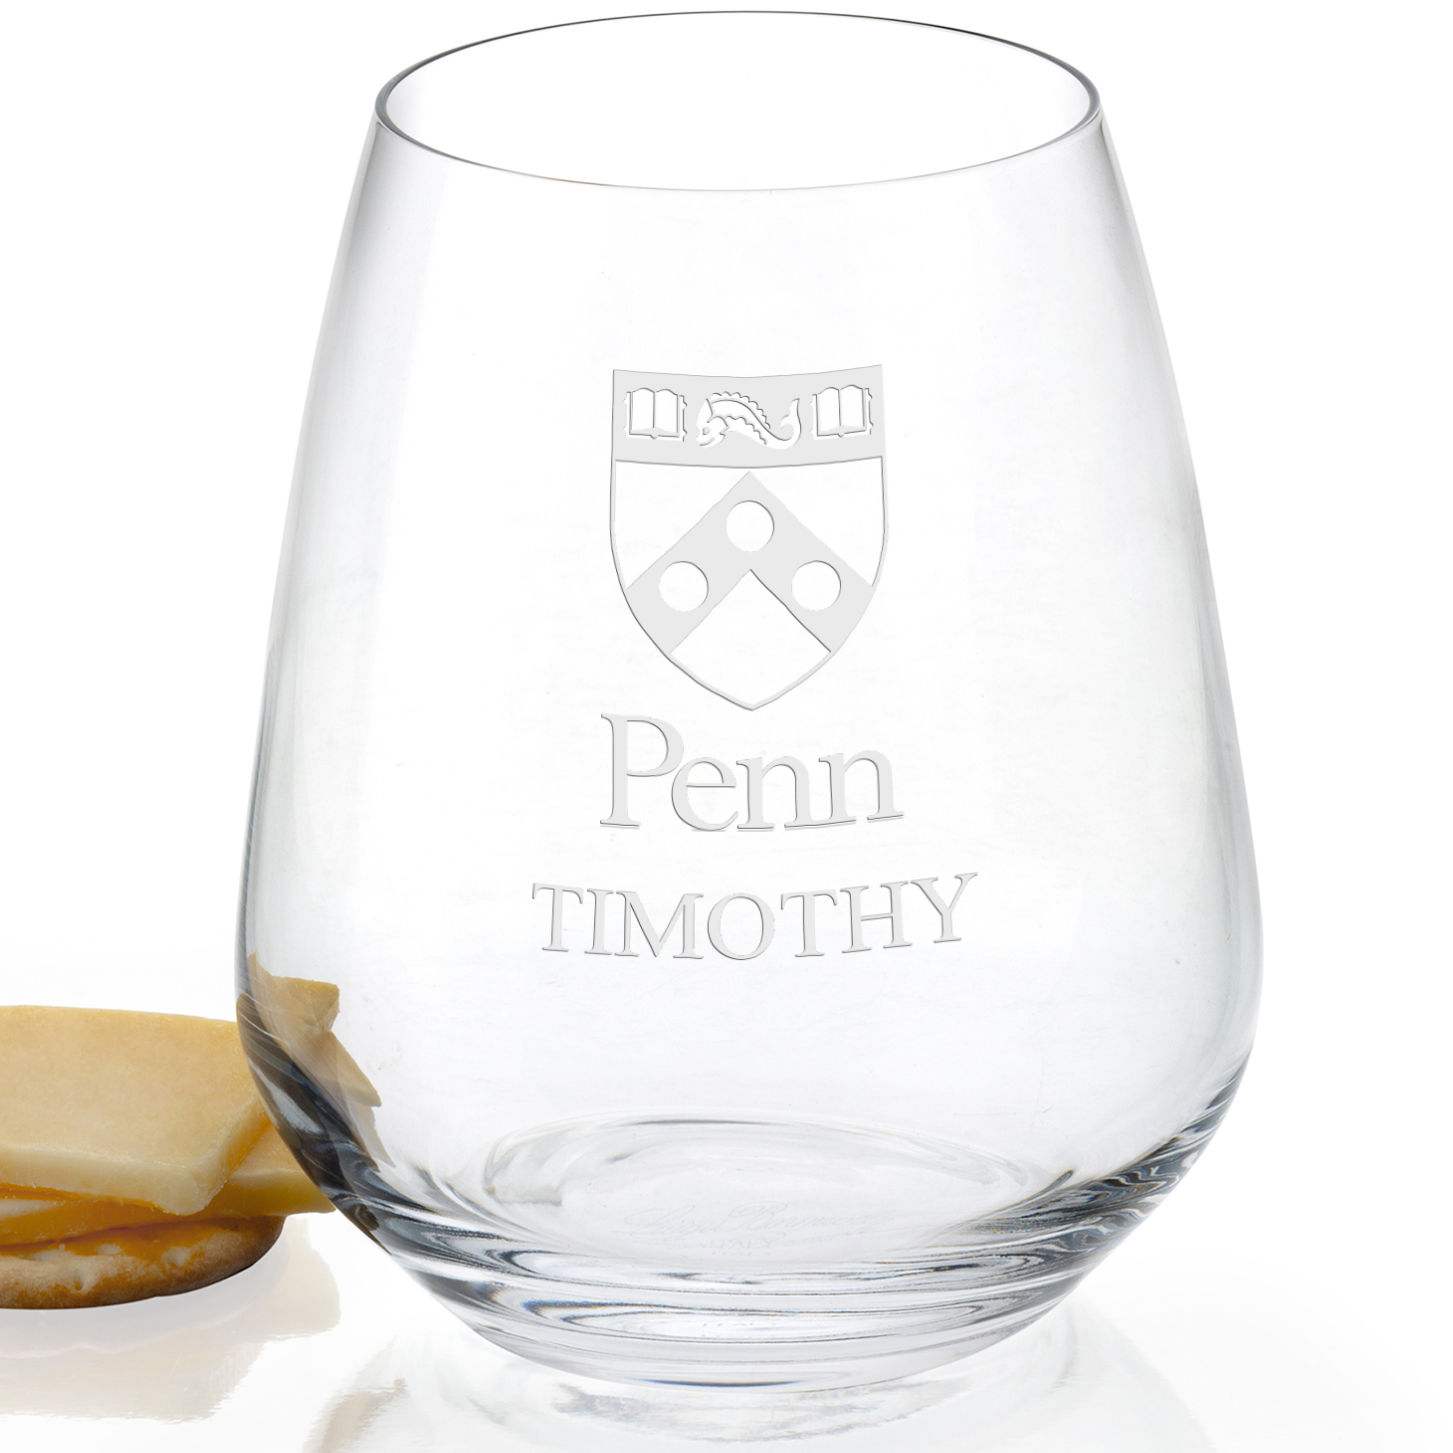 University of Pennsylvania Stemless Wine Glasses - Set of 4 - Image 2